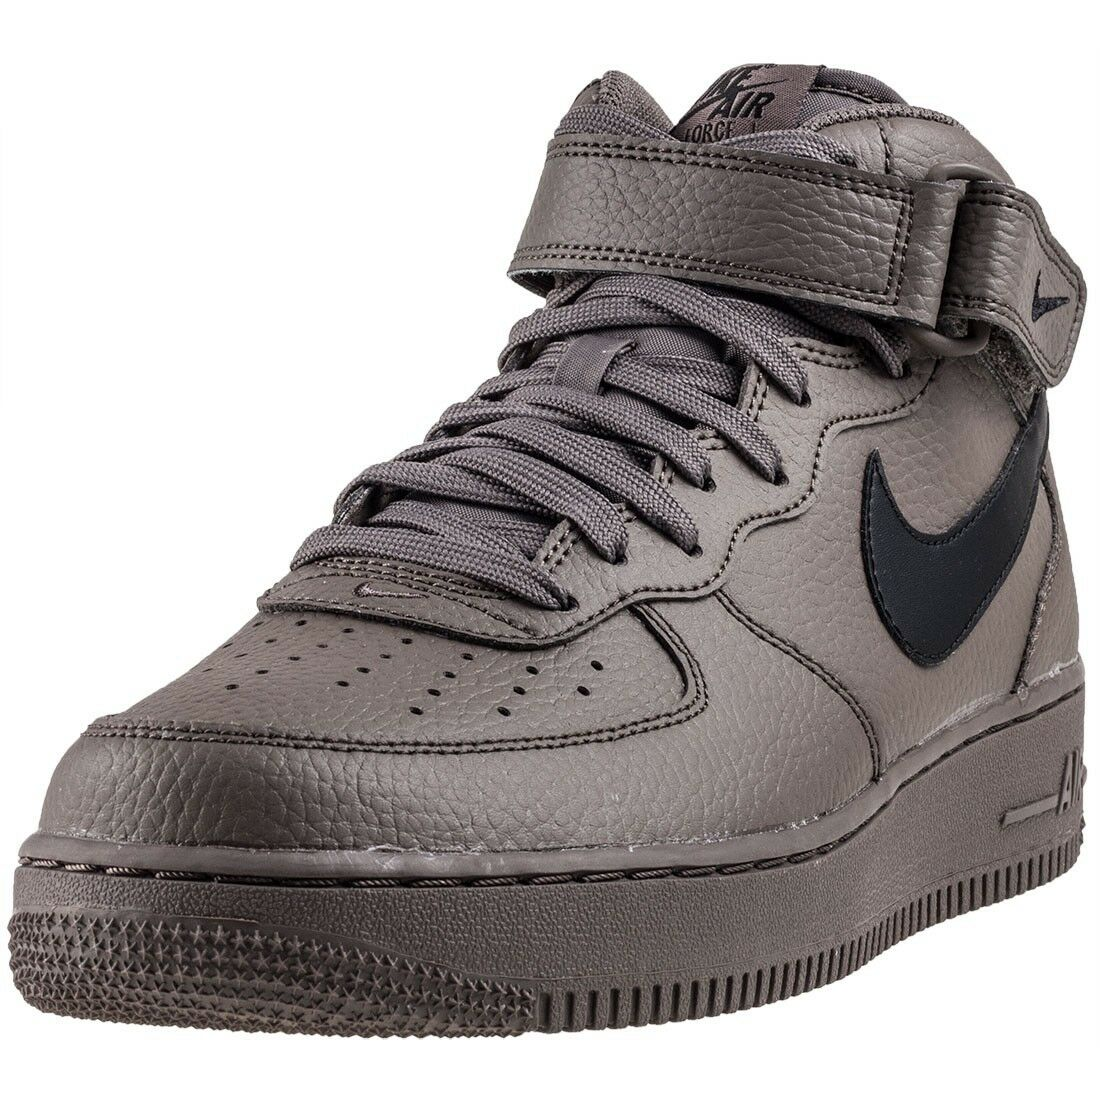 0f88861d0a0 NIKE AIR FORCE 1 MID '07 SNEAKERS MEN SHOES RIDGEROCK 315123-205 SIZE 11